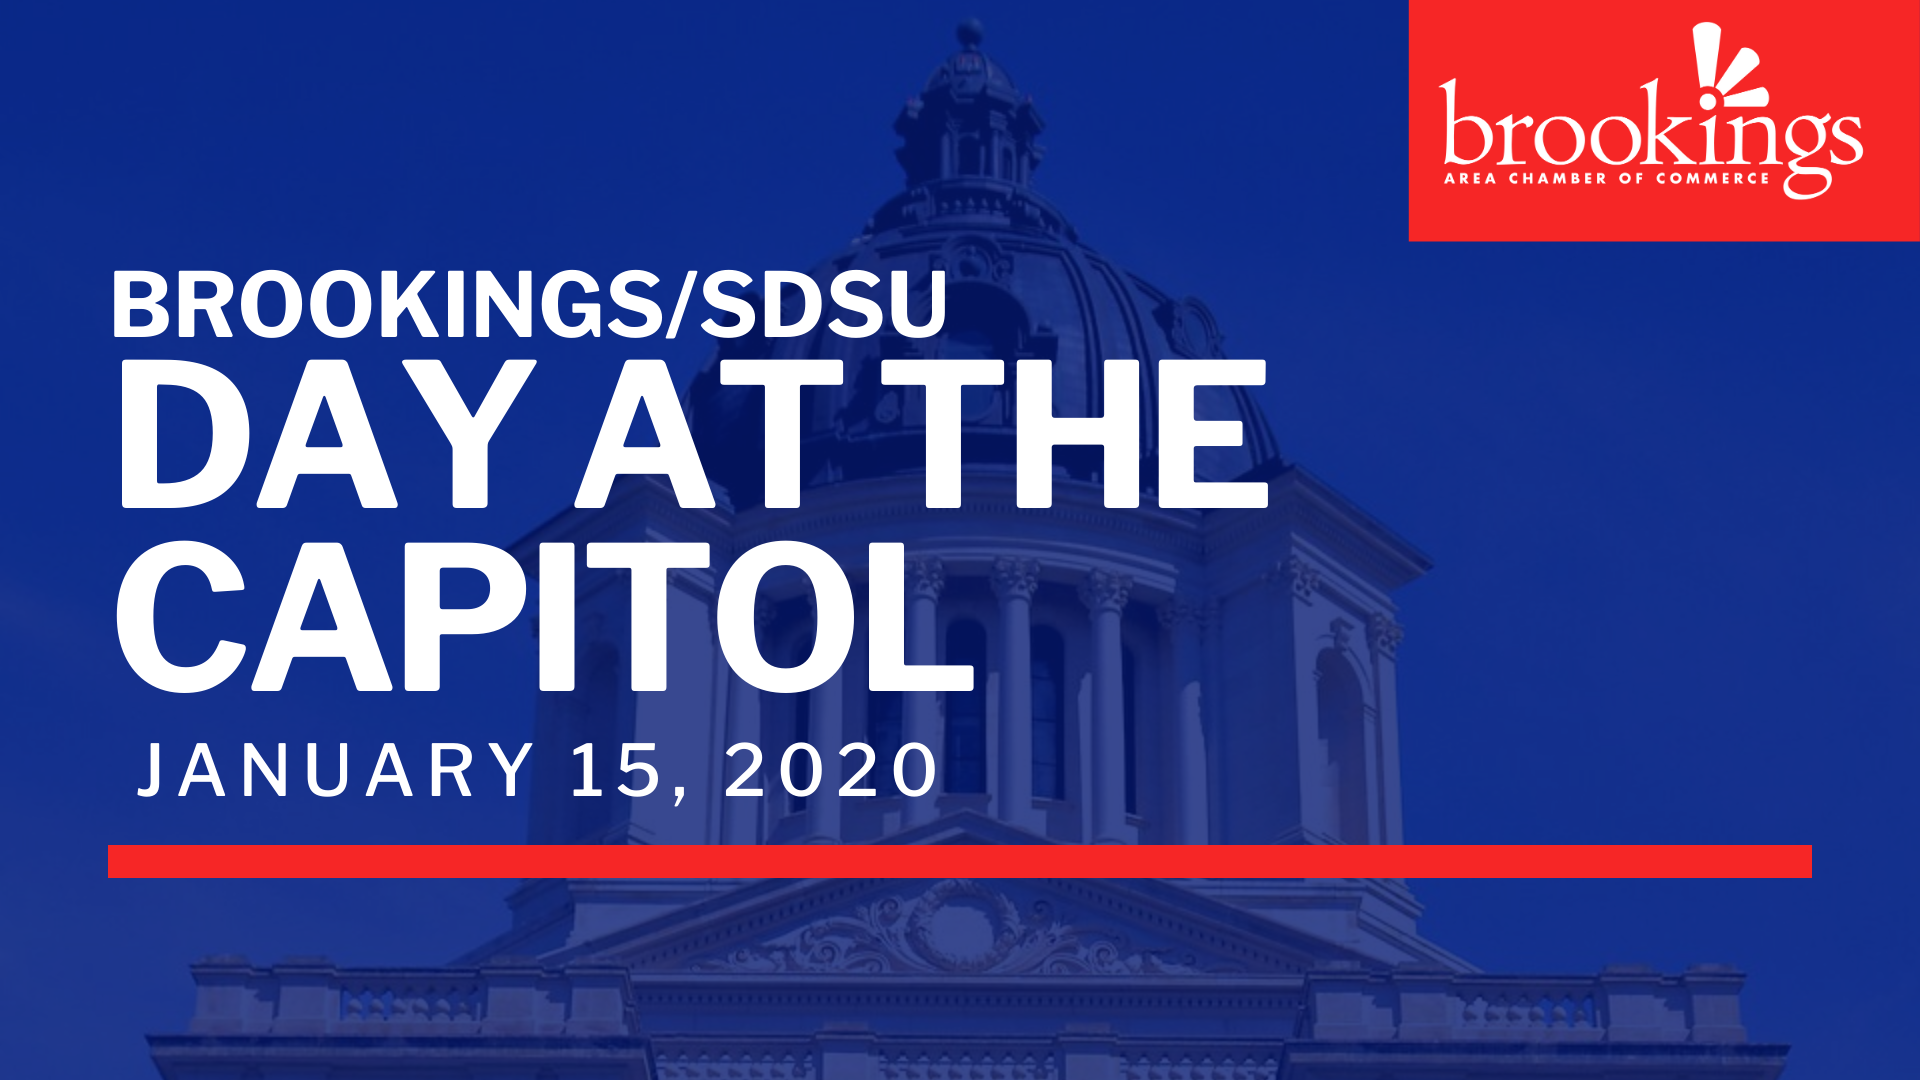 BROOKINGS_SDSU-DAY-AT-THE-CAPITOL-Event-Header.png